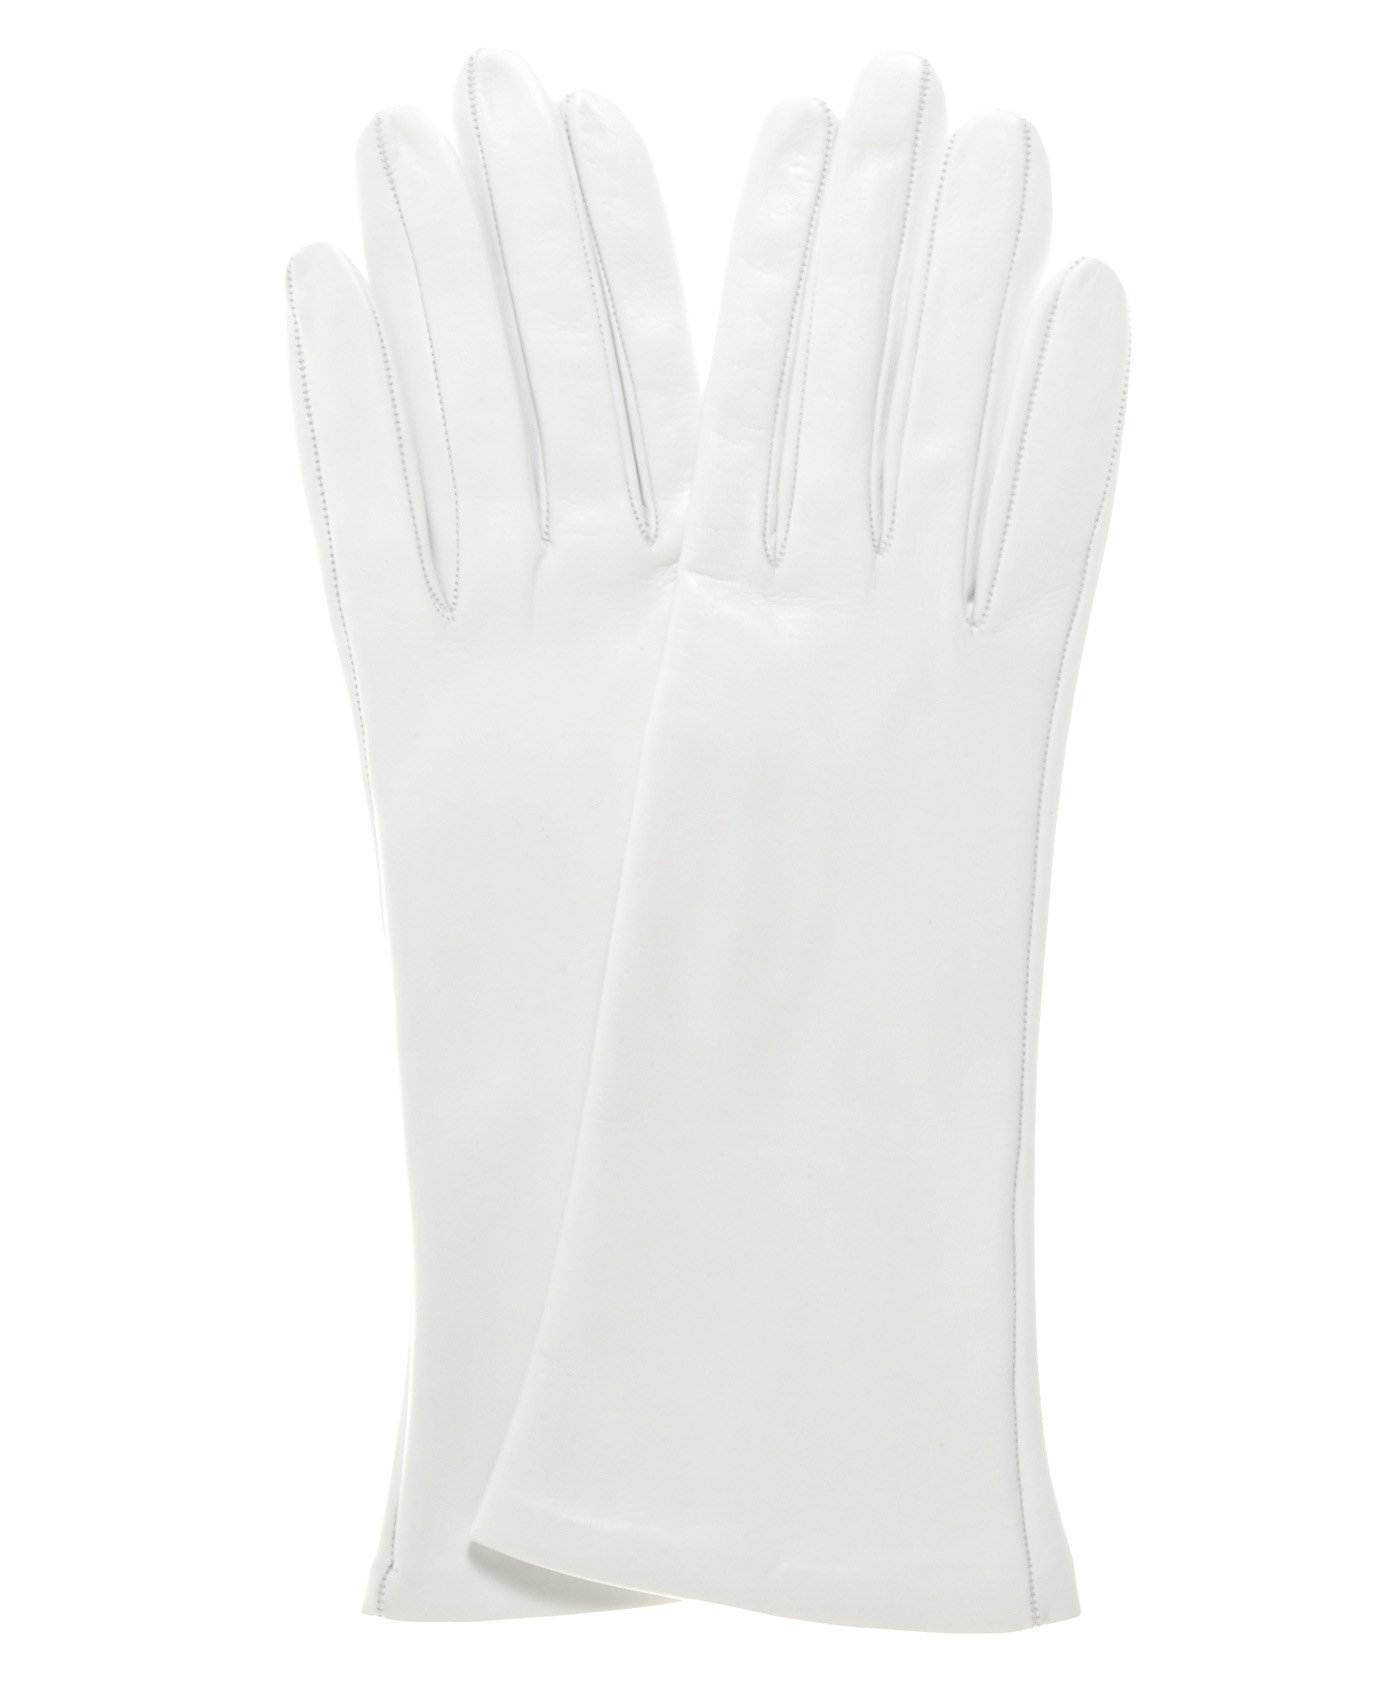 Fratelli Orsini Women's Italian Silk Lined 4-Button Length Bridal Gloves Size 7 Color White by Fratelli Orsini